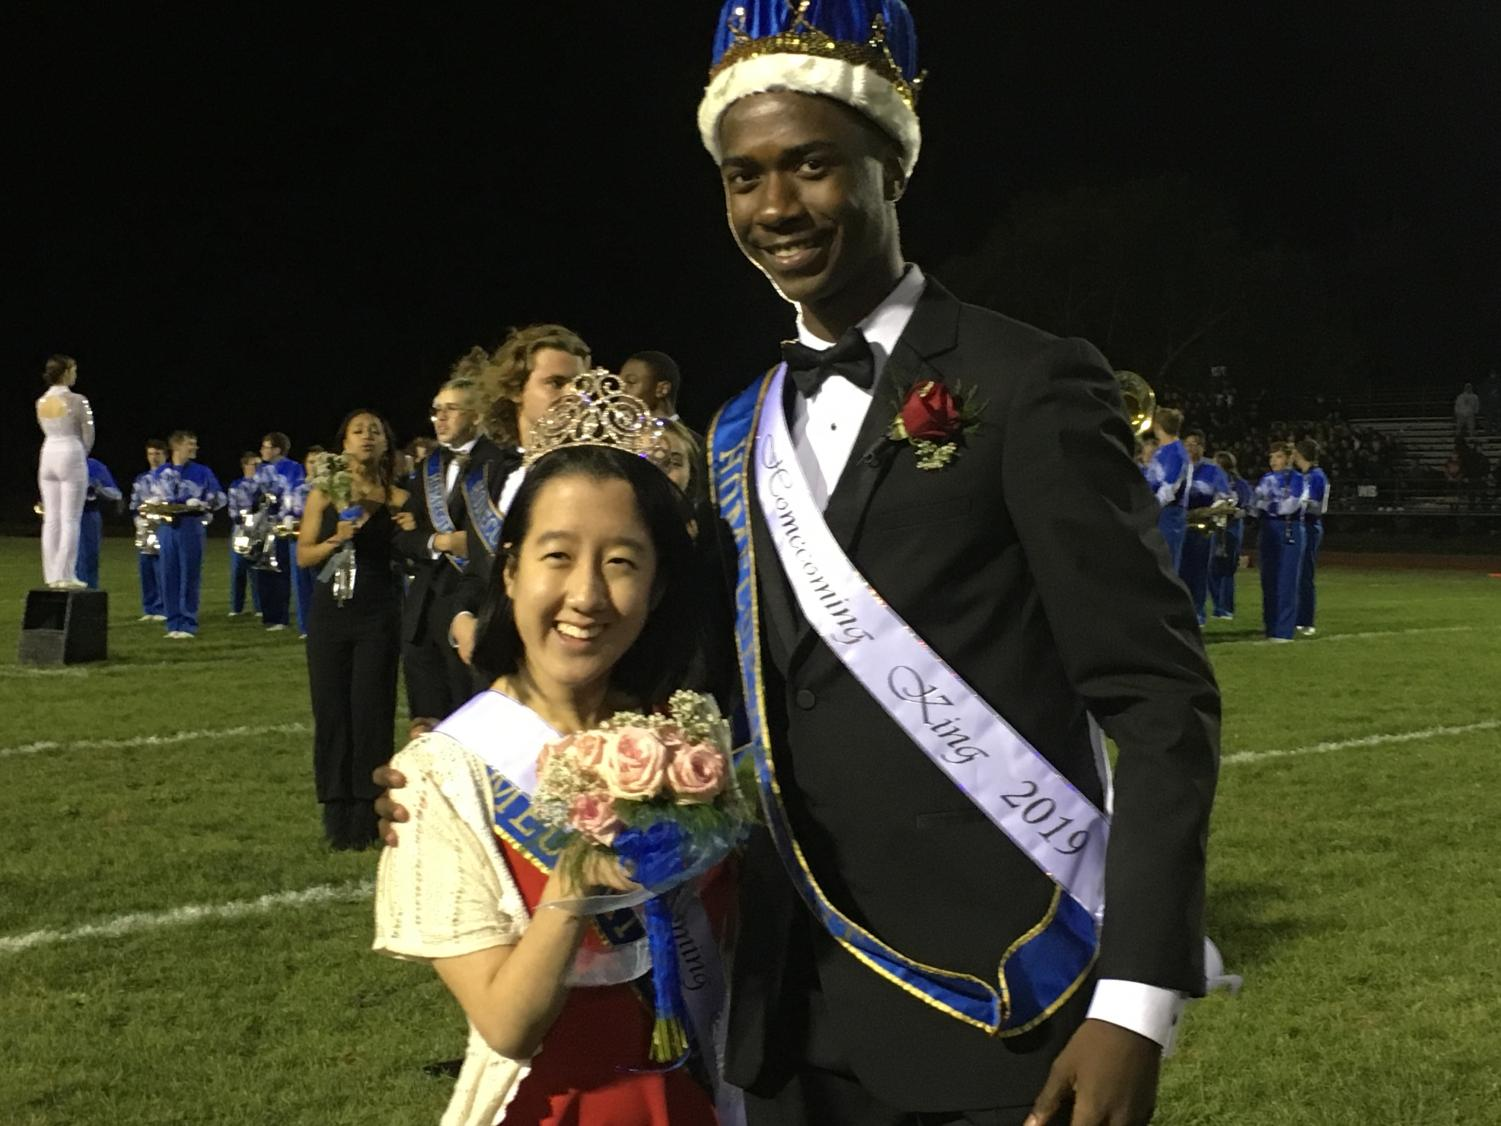 Crosby and Chi pose for a picture after being crowned homecoming king and queen.